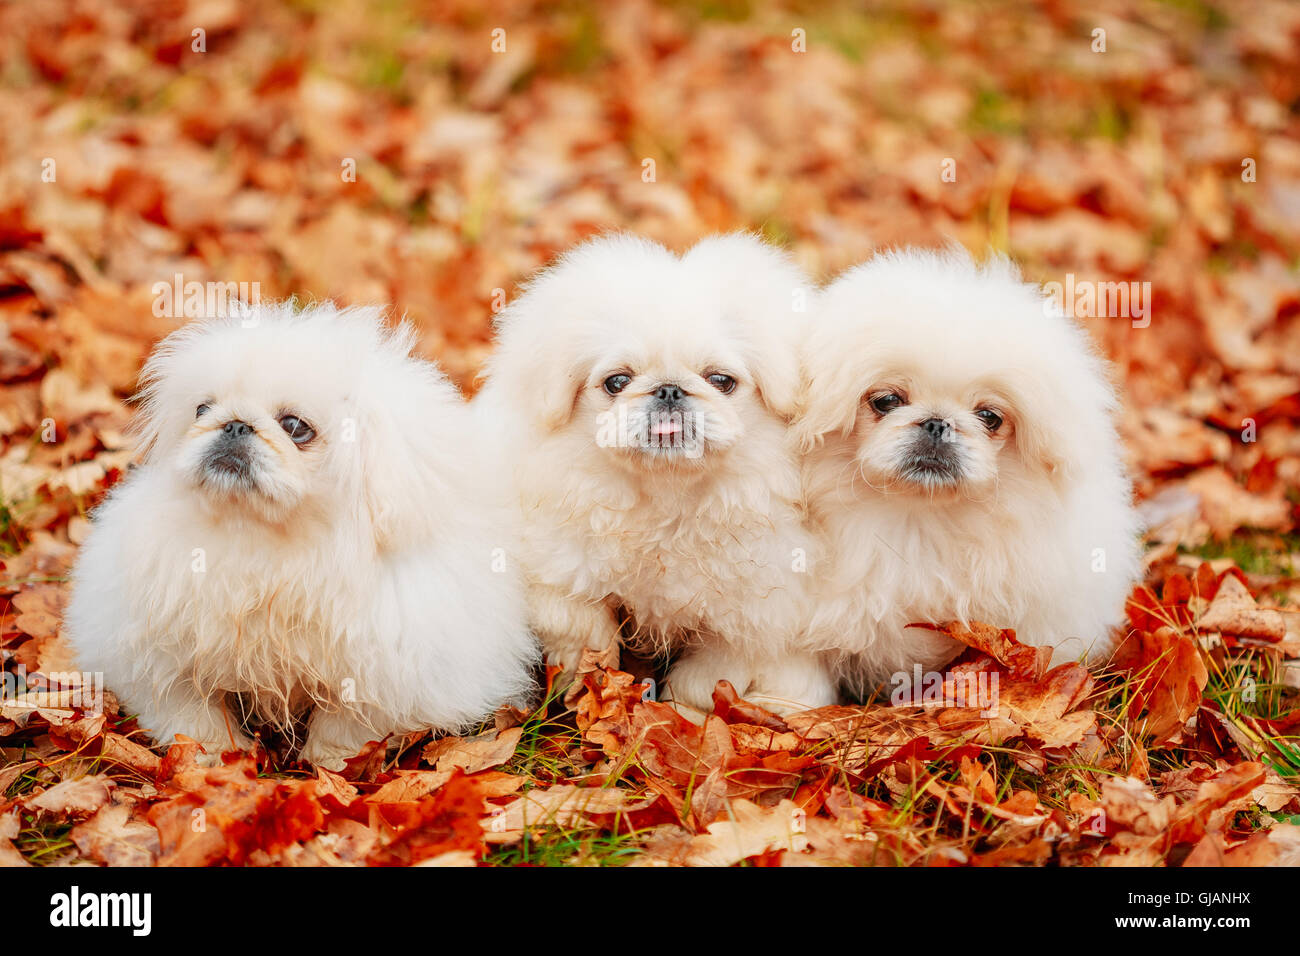 White Pekingese Pekinese Puppies Dog Sitting On Yellow Orange Fall